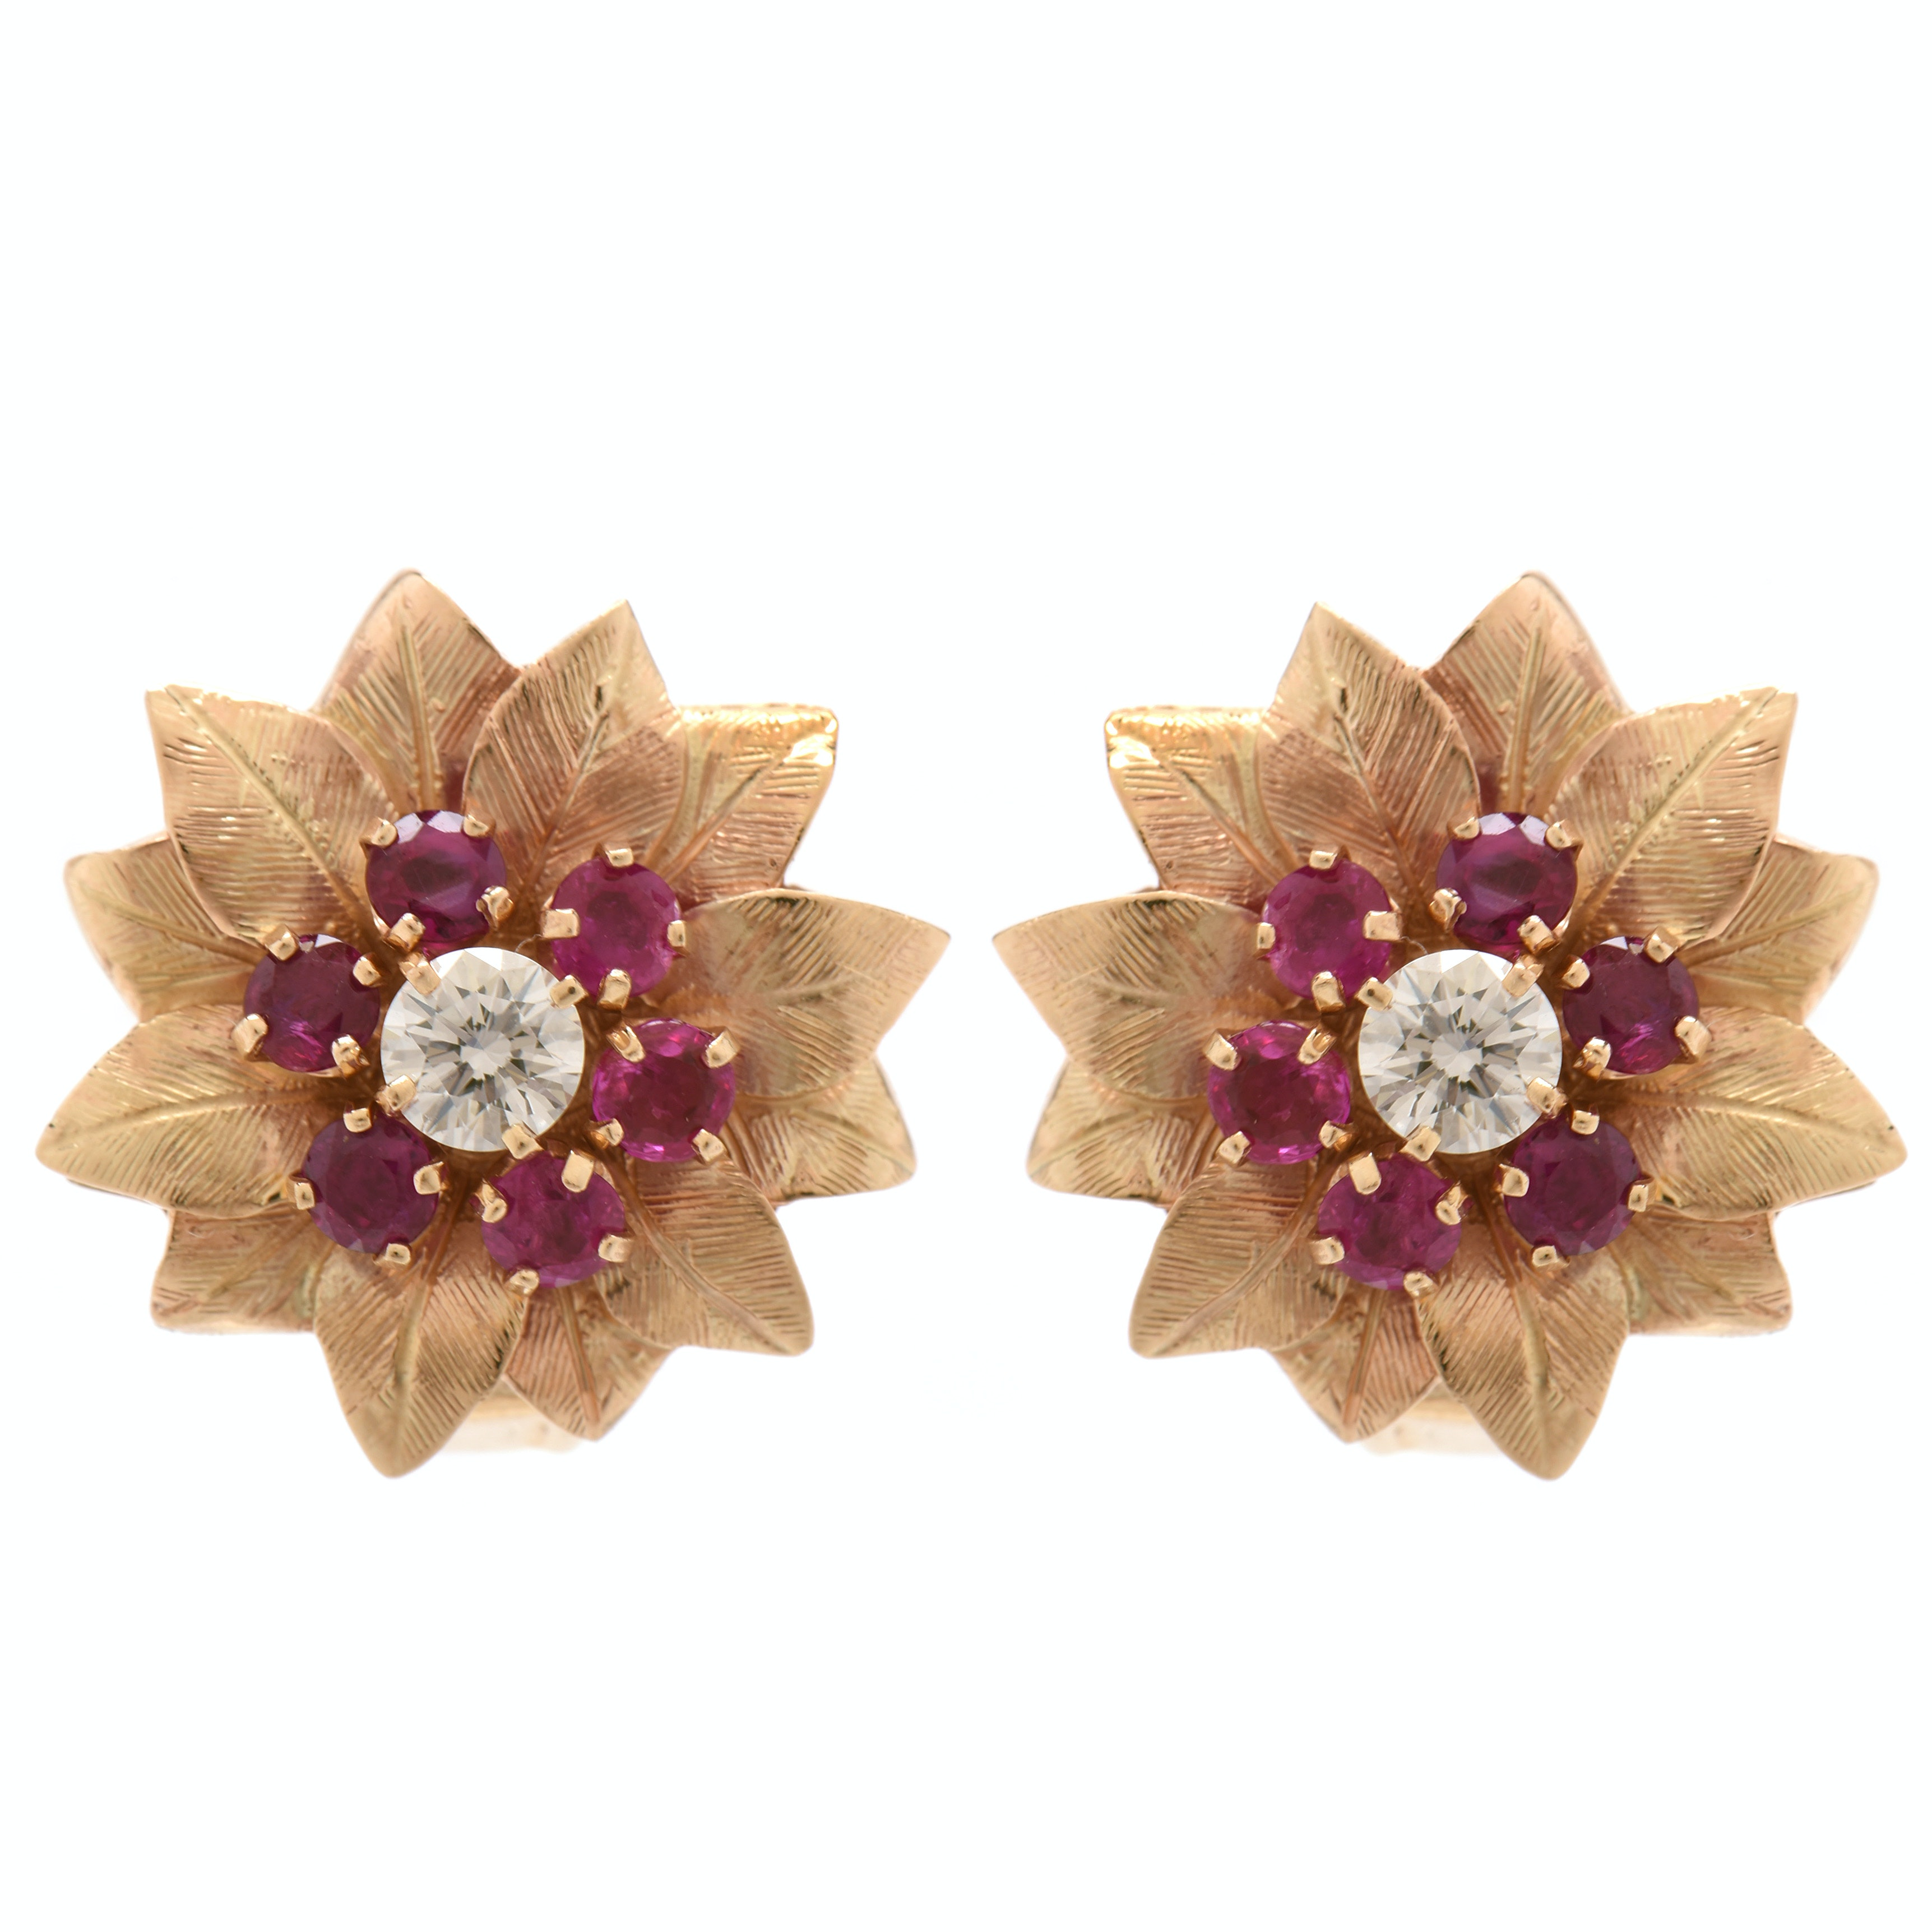 Vintage 14K Yellow Gold Diamond and Unheated Ruby Floral Earrings